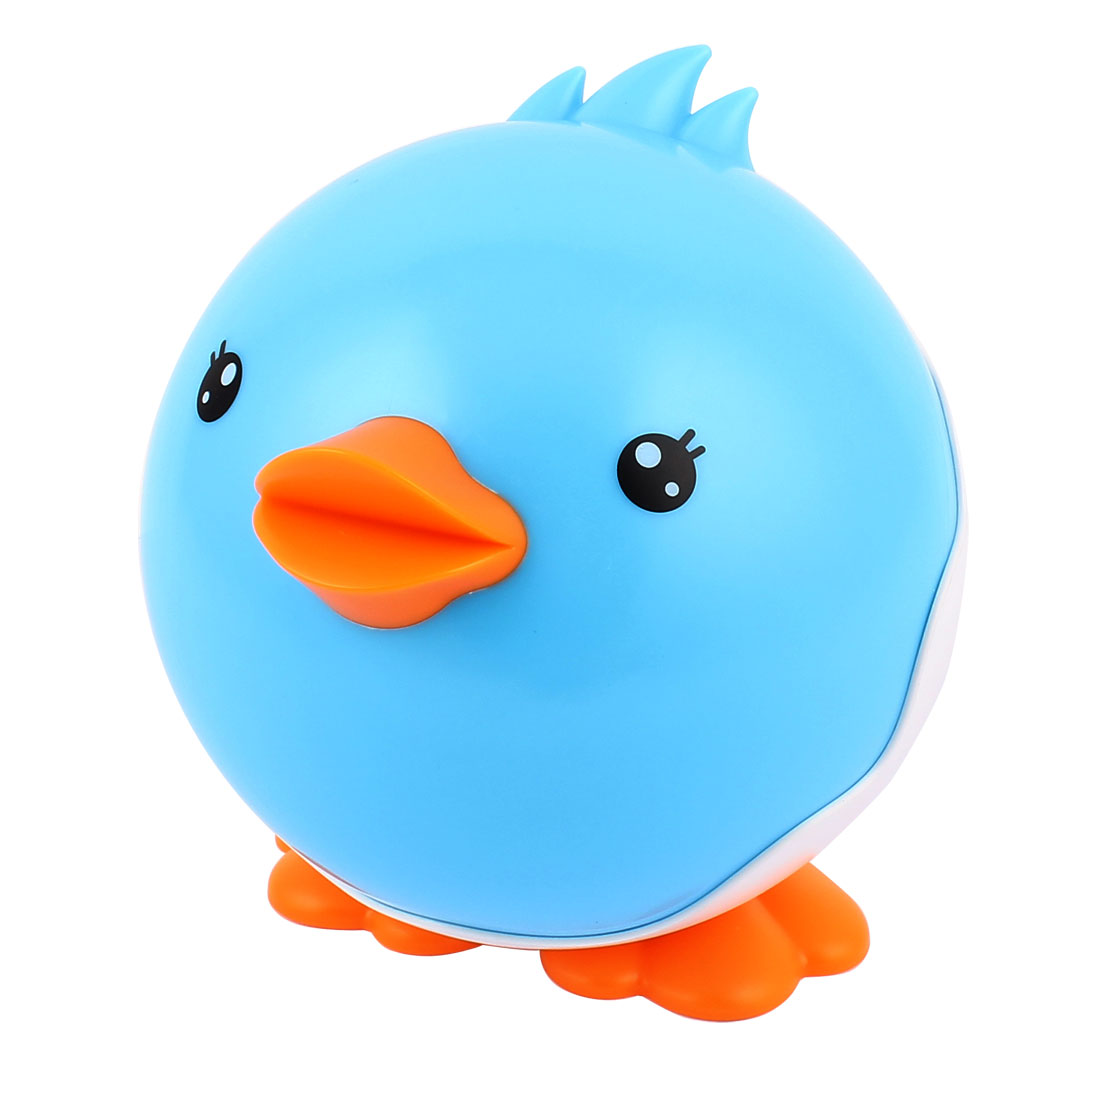 LED Little Duck Lamp Touch Induction Dimmer USB Rechargeable Desk Lamp Blue